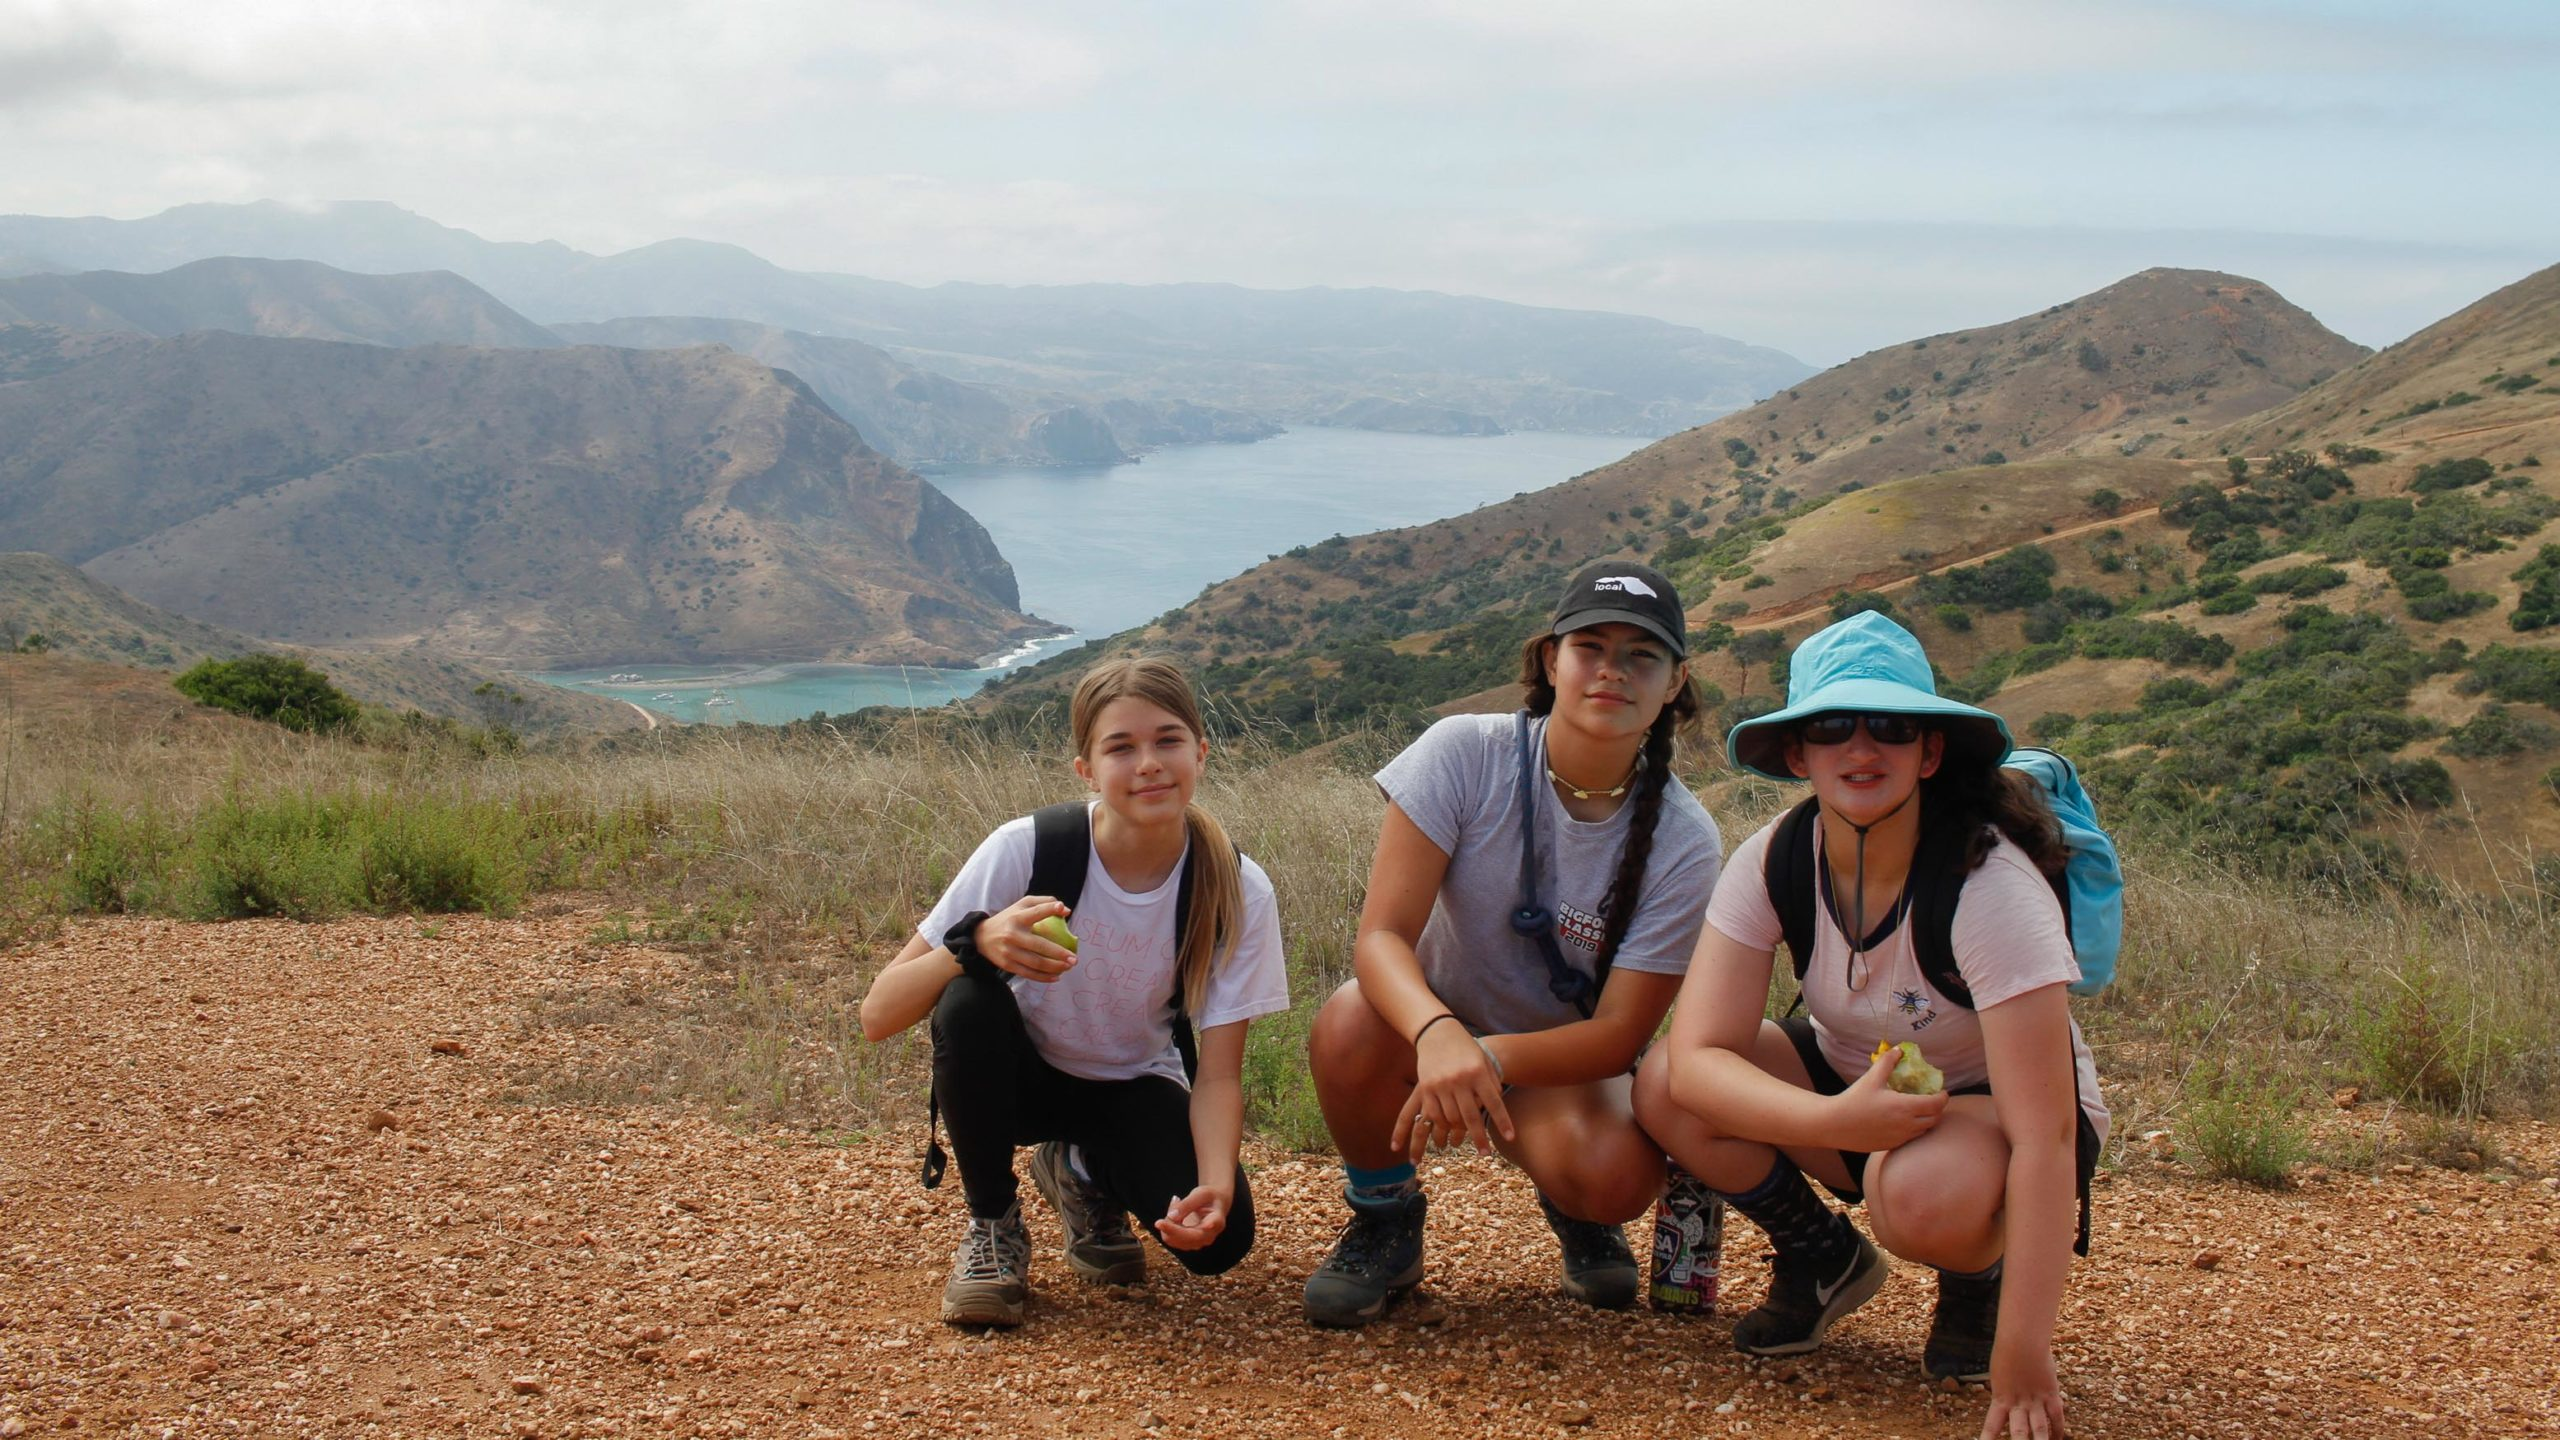 summer campers kneeling and overlooking the catalina island landscape